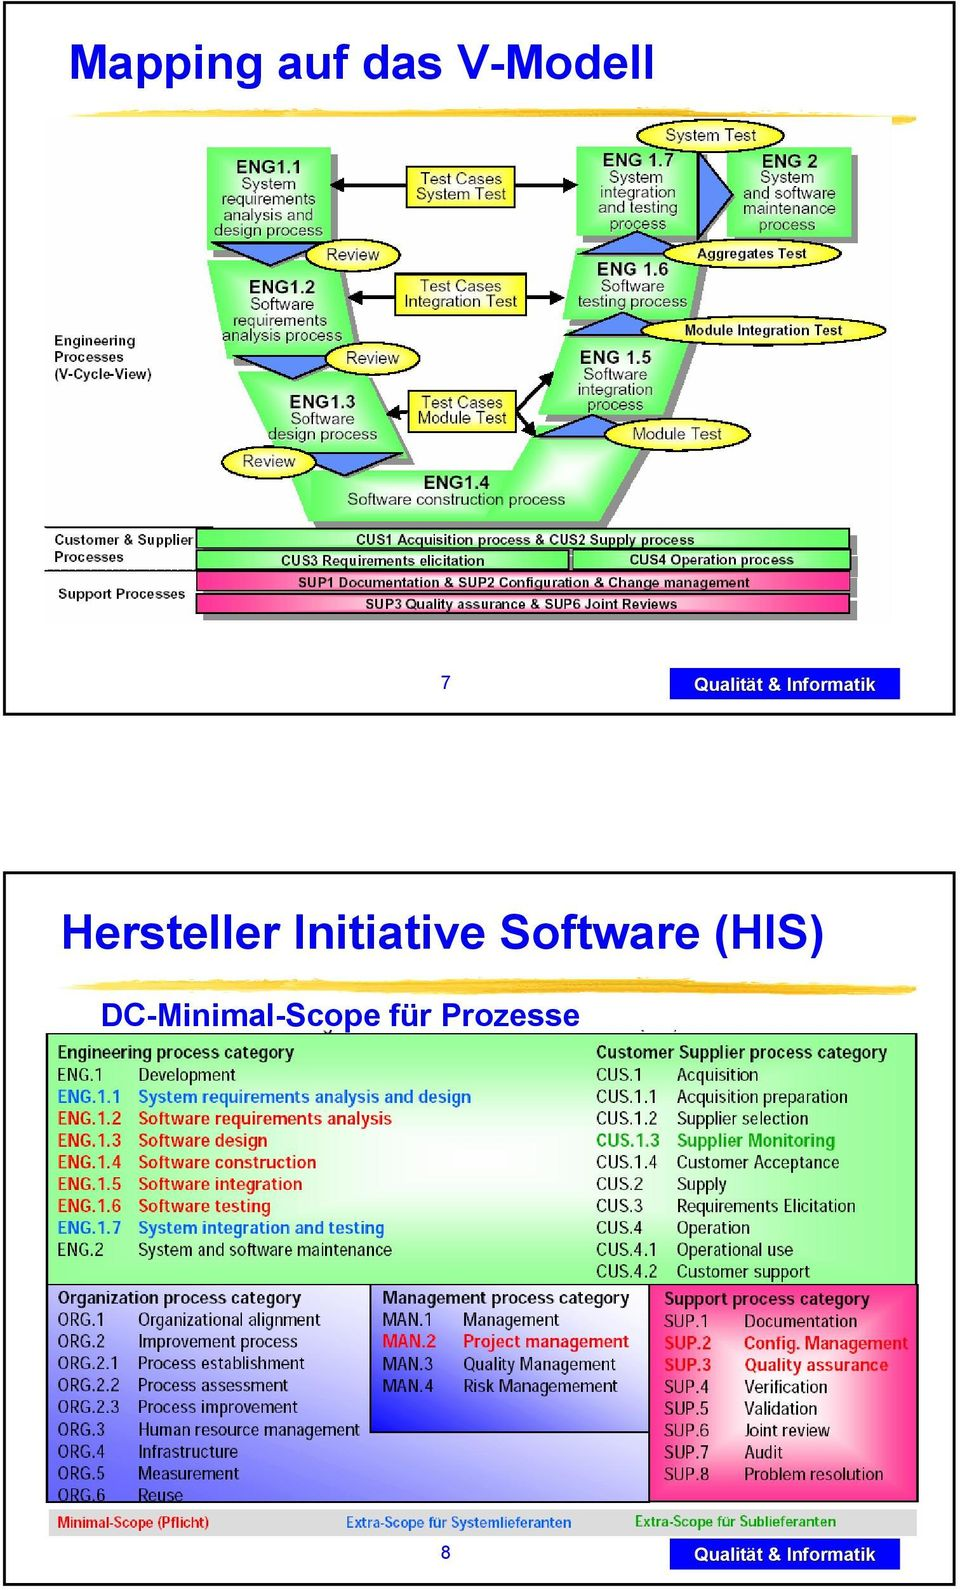 Initiative Software (HIS)